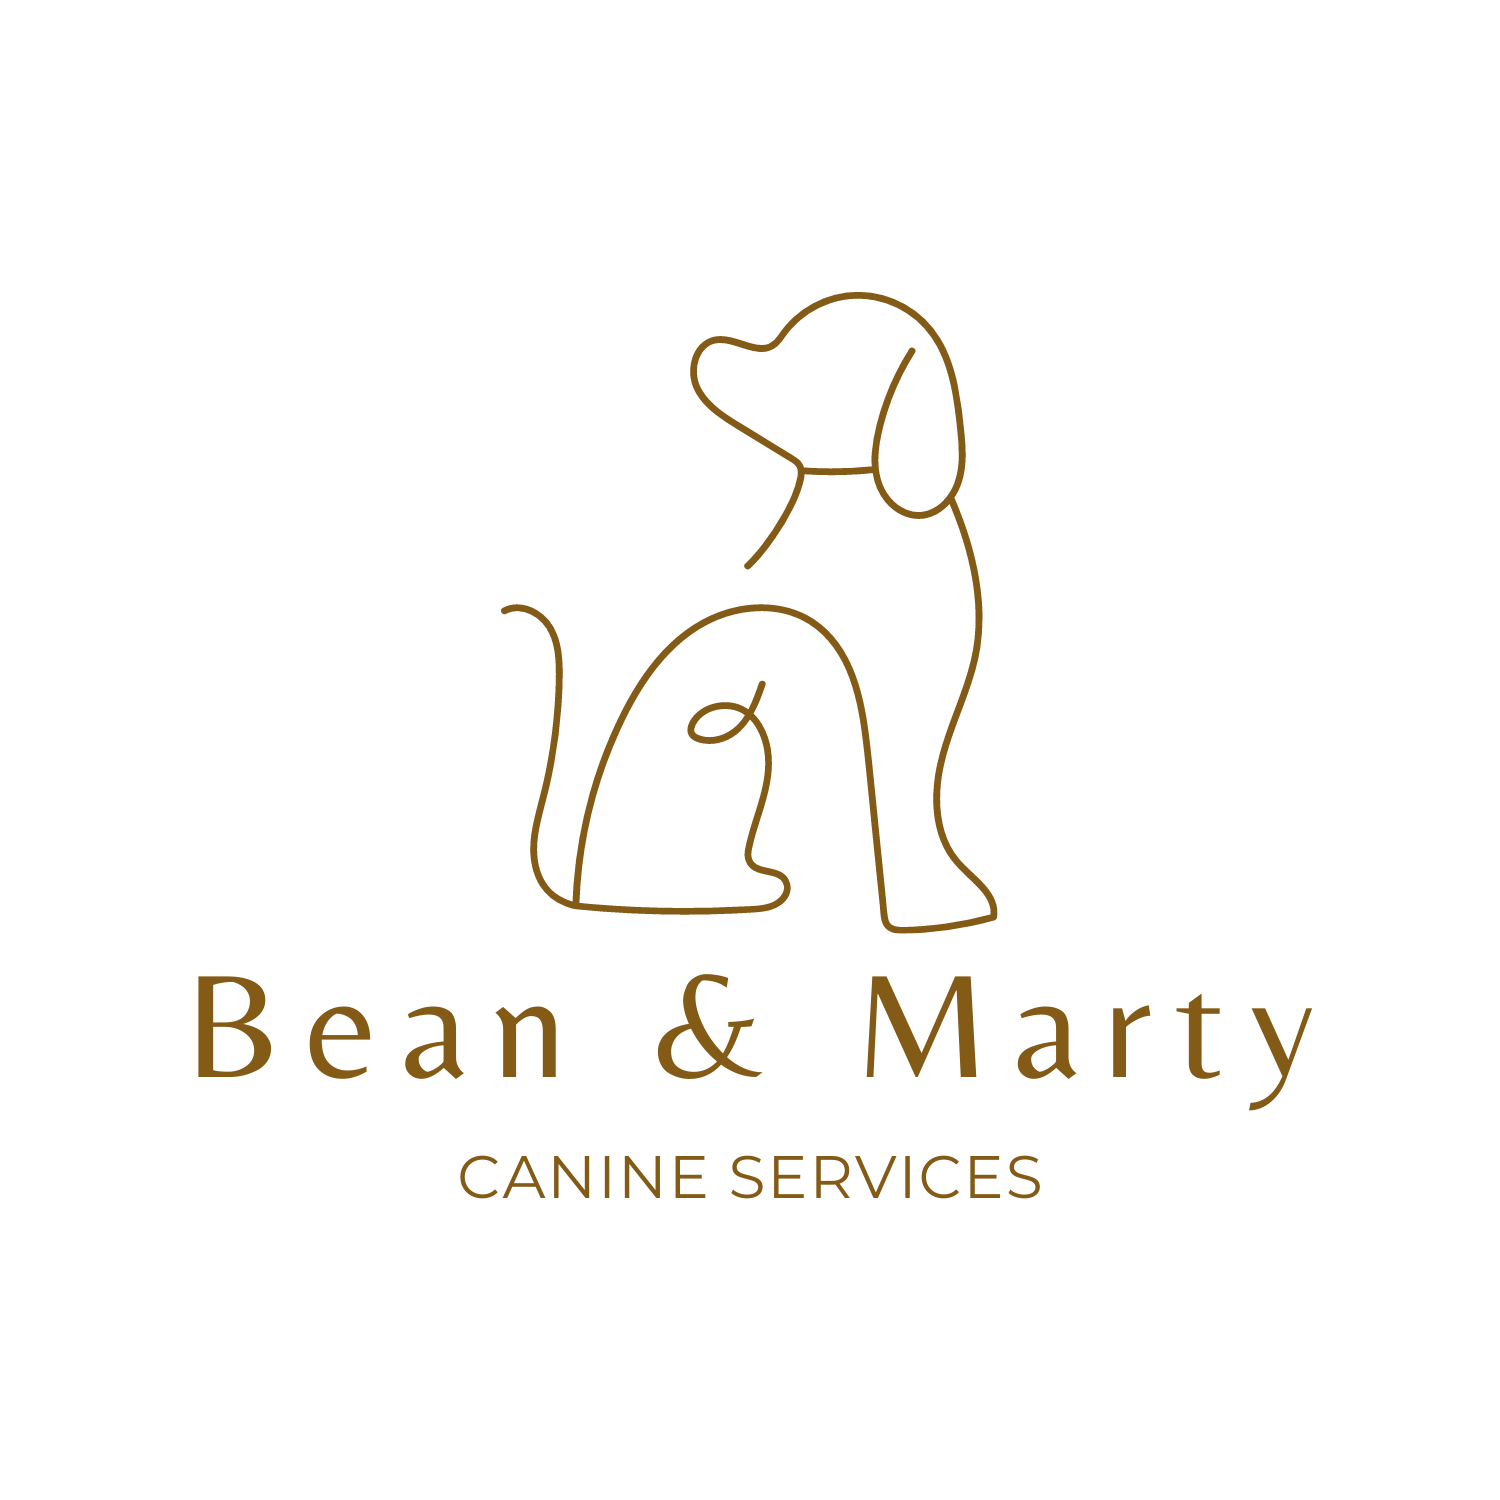 Bean and Marty Canine Services